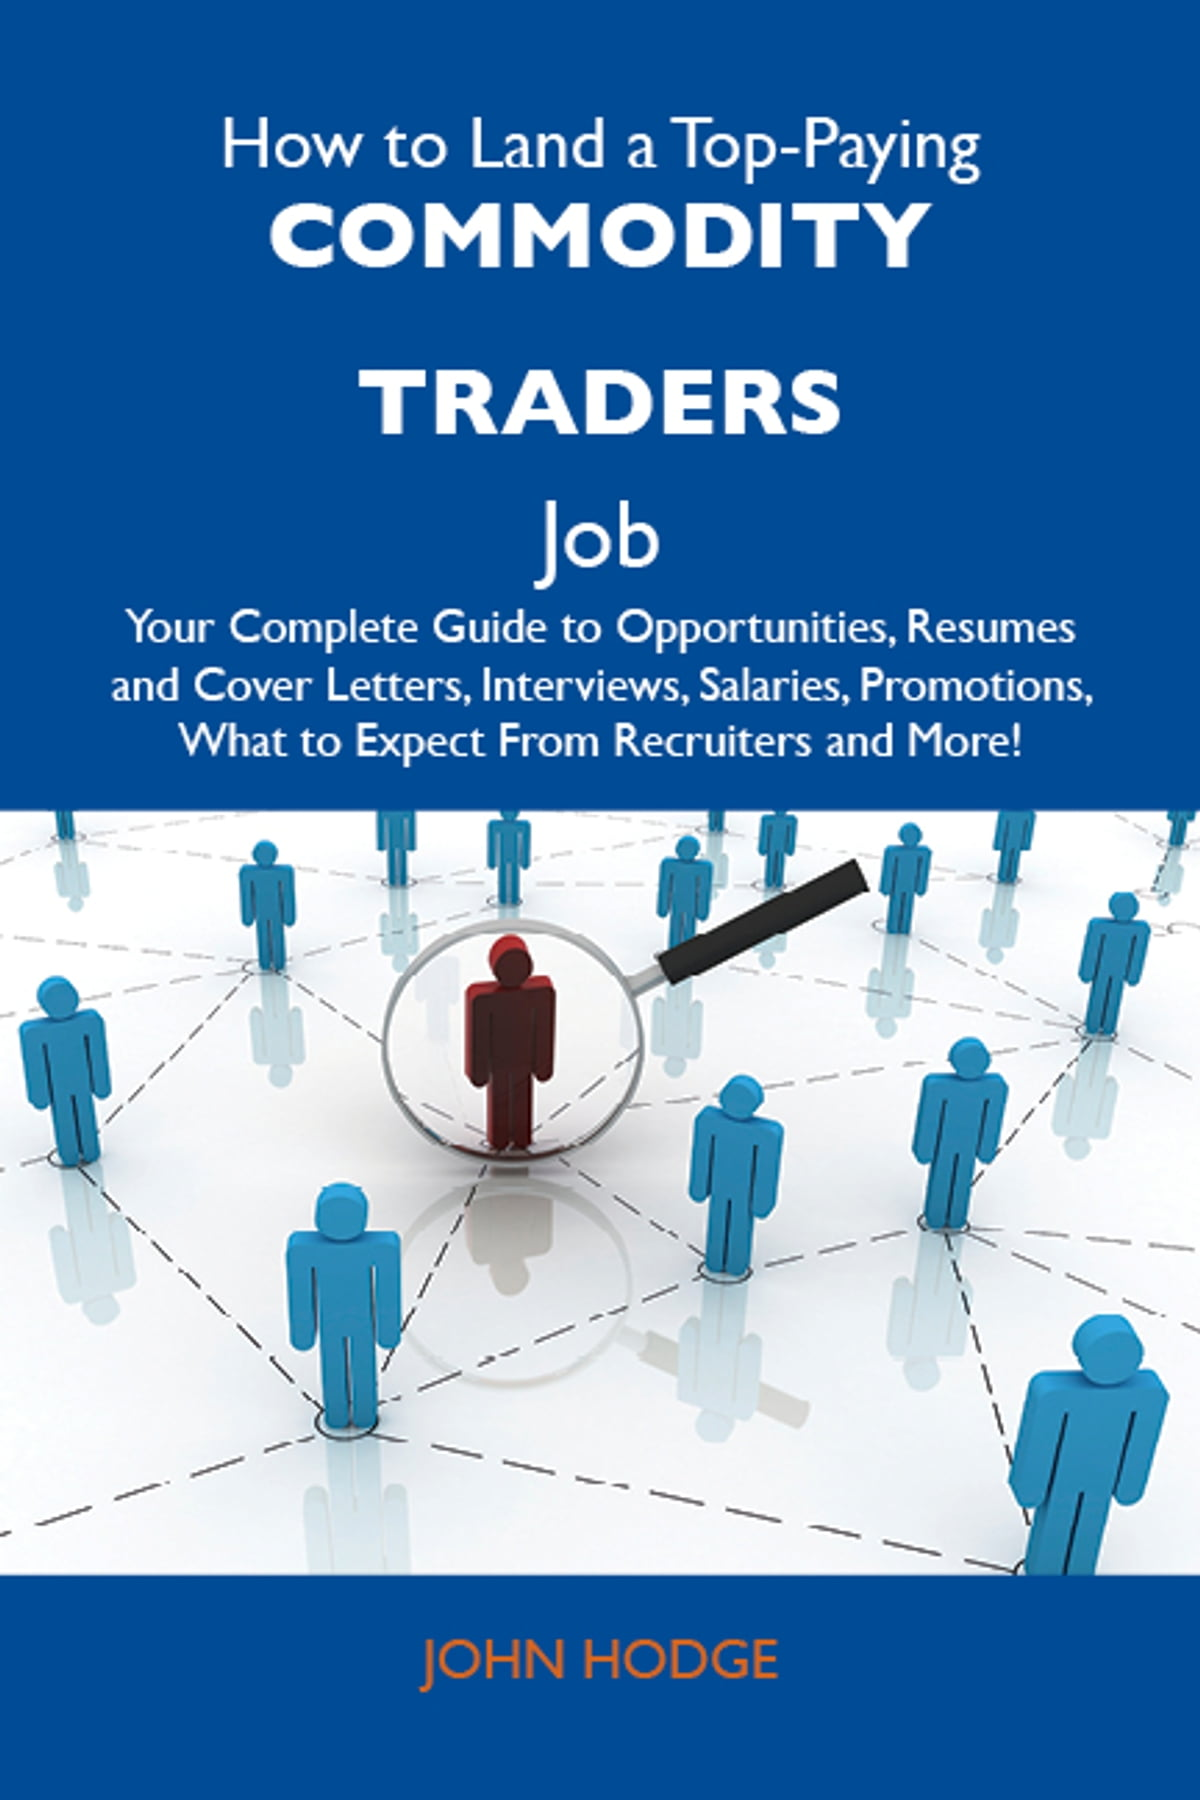 How to Land a Top-Paying Commodity traders Job: Your Complete Guide to  Opportunities, Resumes and Cover Letters, Interviews, Salaries, Promotions,  ...